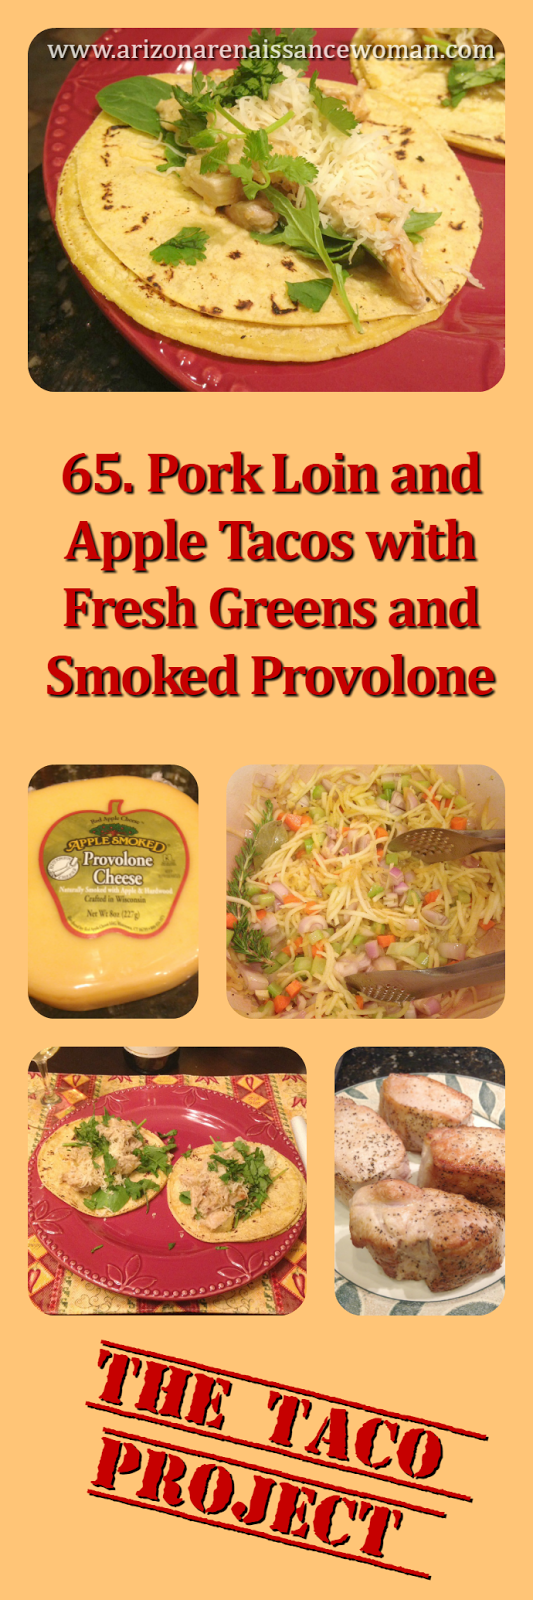 Pork Loin and Apple Tacos with Fresh Greens and Smoked Provolone Collage